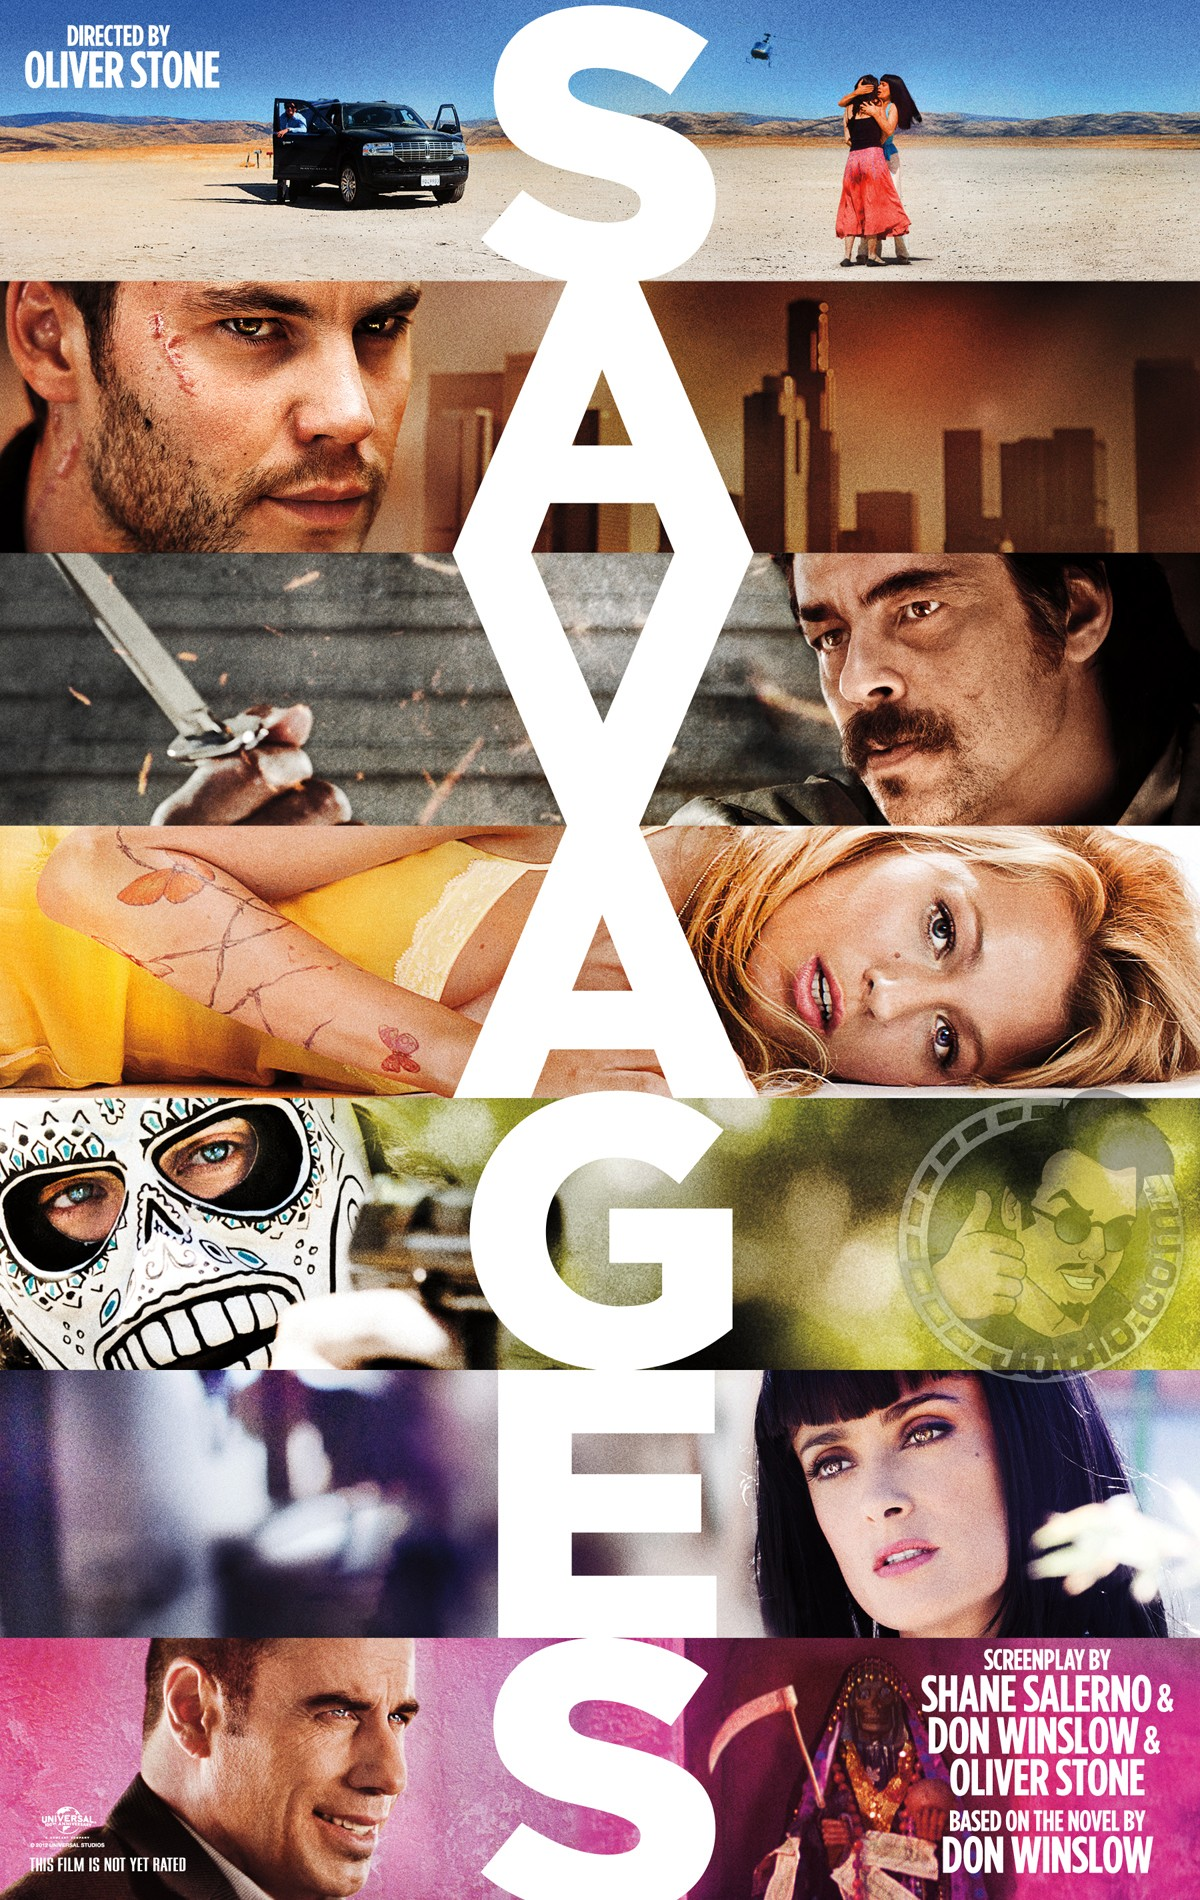 Savages 2012 [UNRATED] DVDRip [VO] [MULTI]